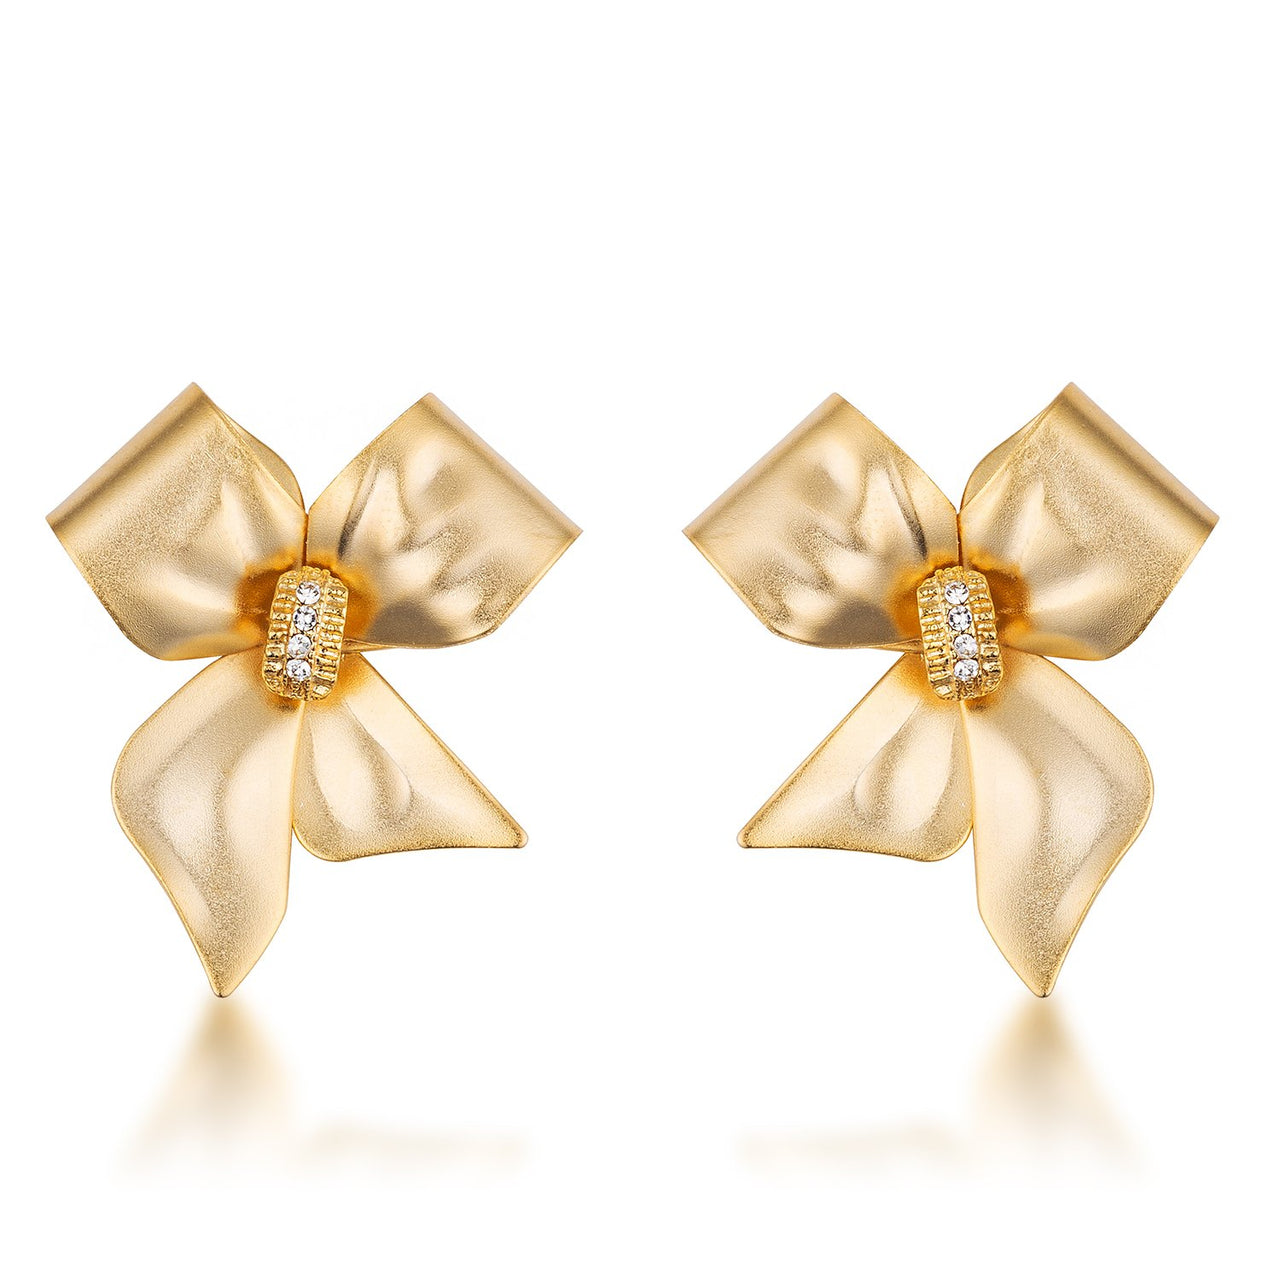 18k Matte Gold Plated Crystal Accented Bow Earrings - Earrings - KA Designs Online